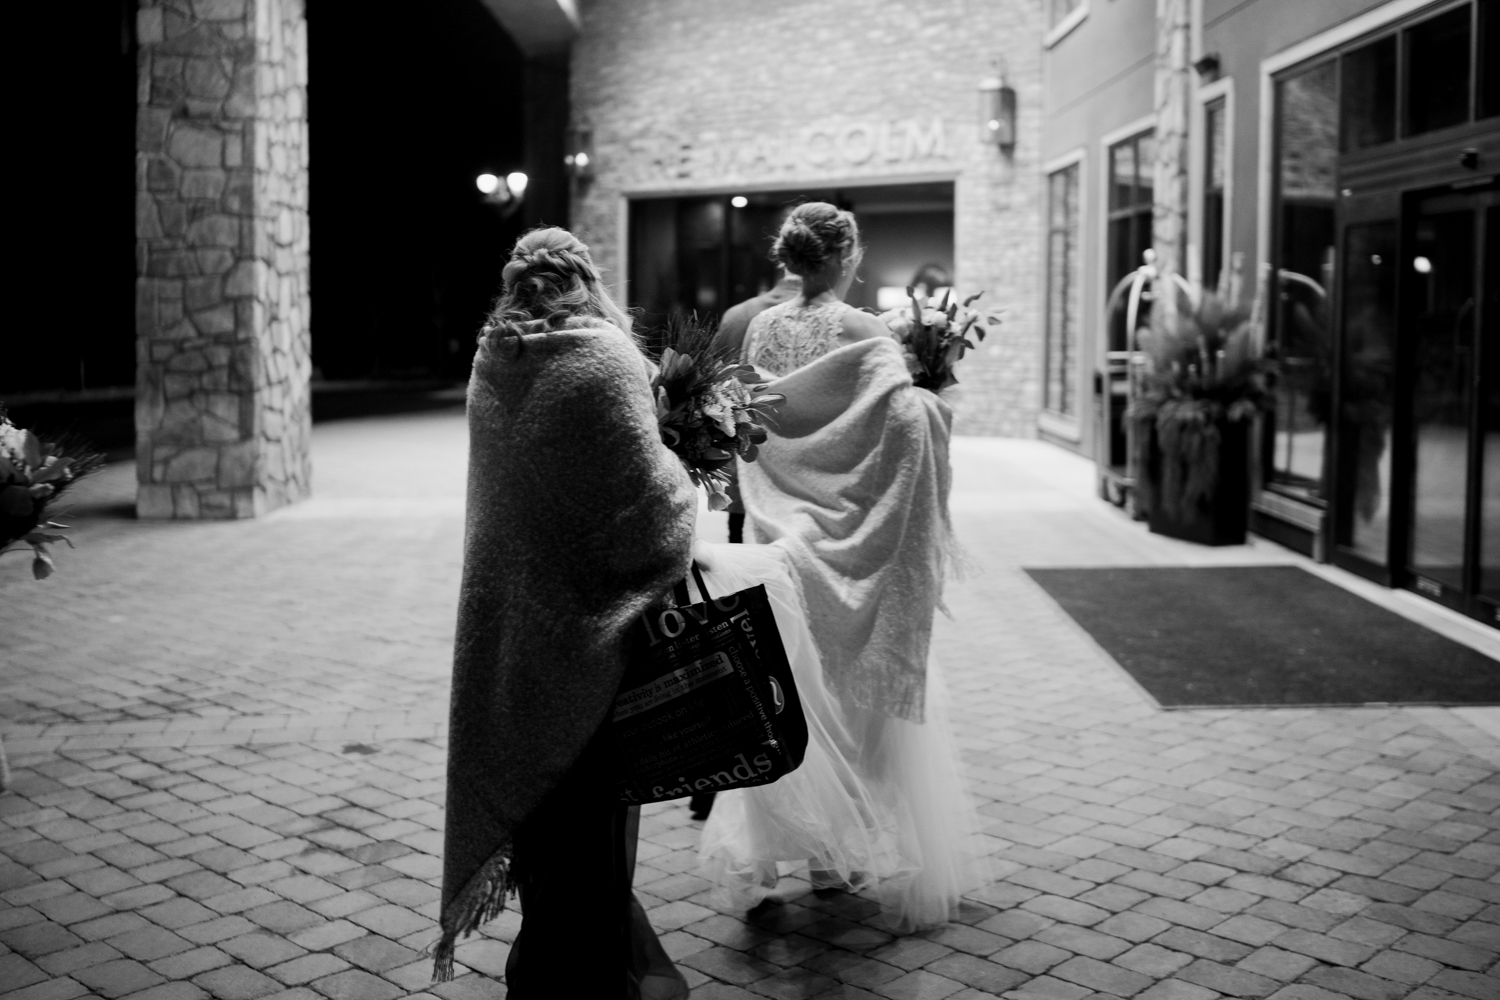 Canmore-Wedding-Photographer-72.jpg